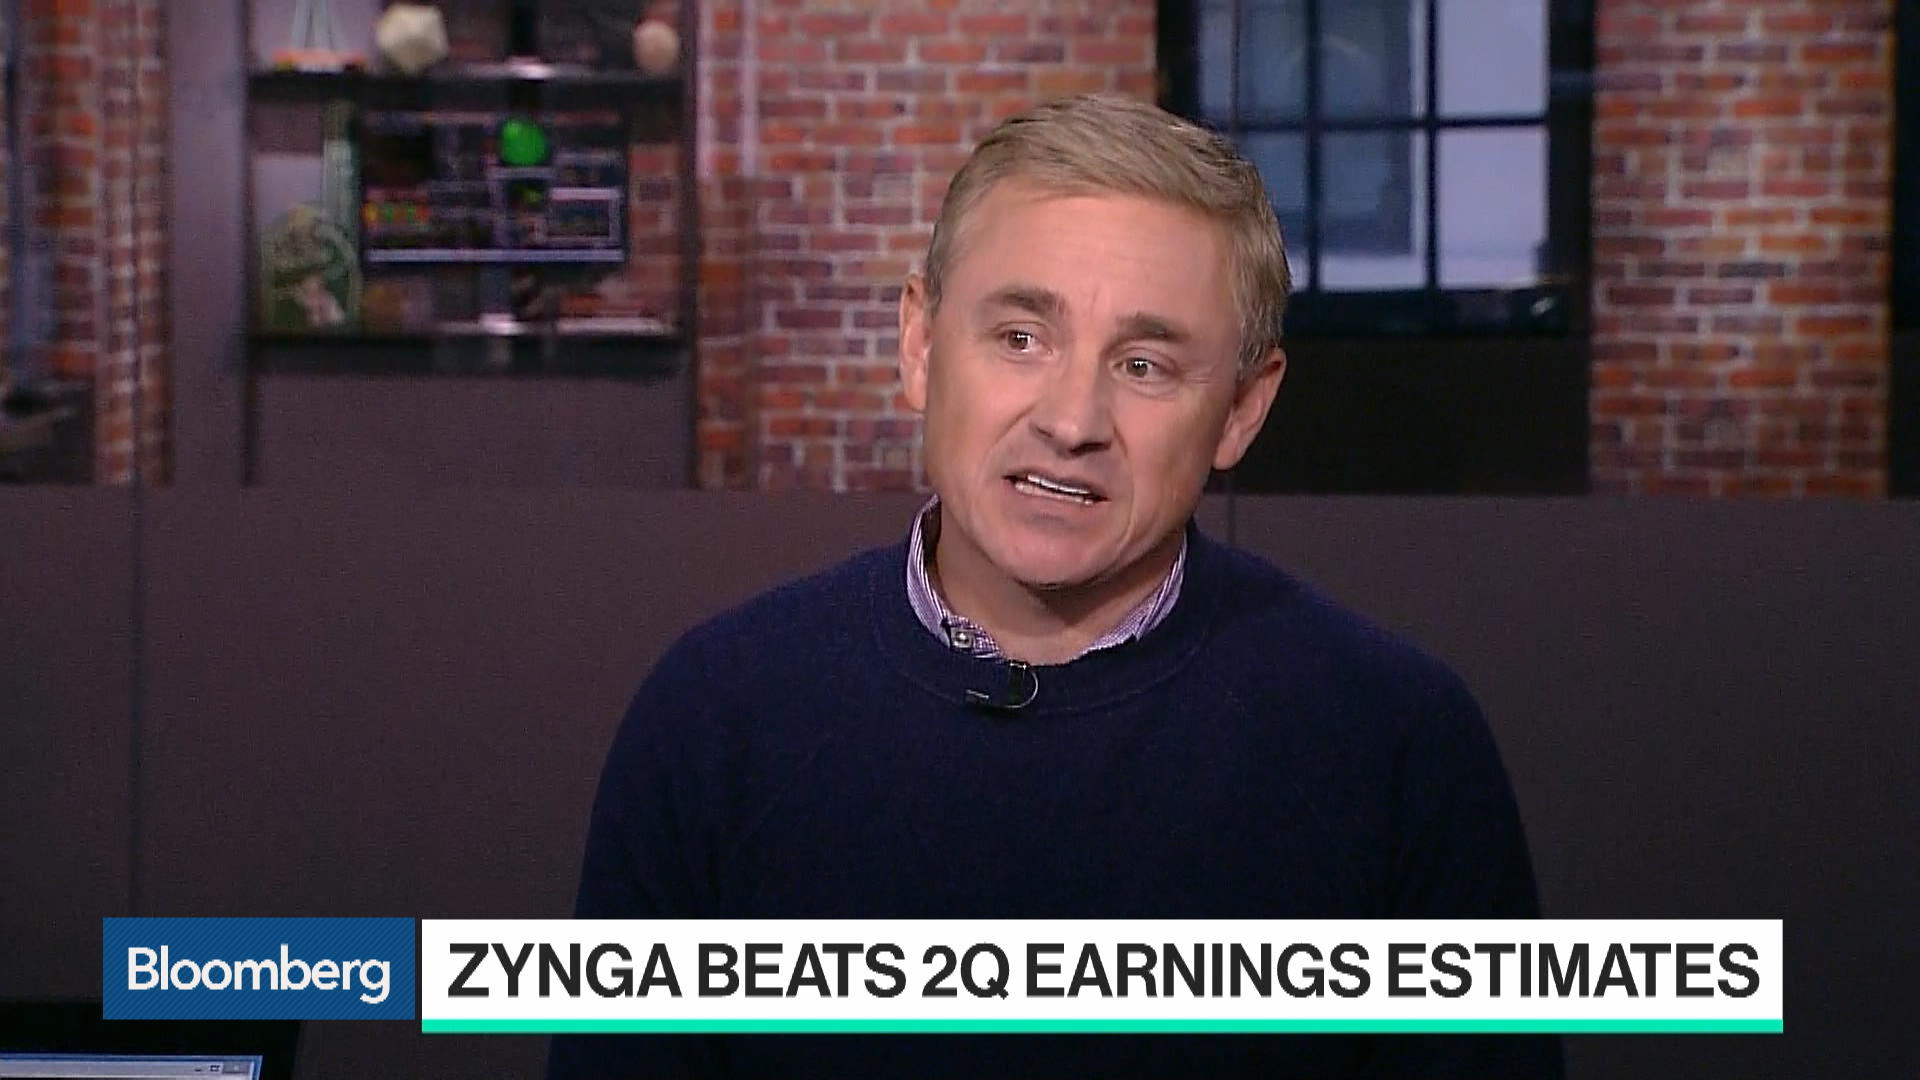 Zynga's Growth in Asia Offsetting Smartphone Slump: CEO Frank Gibeau